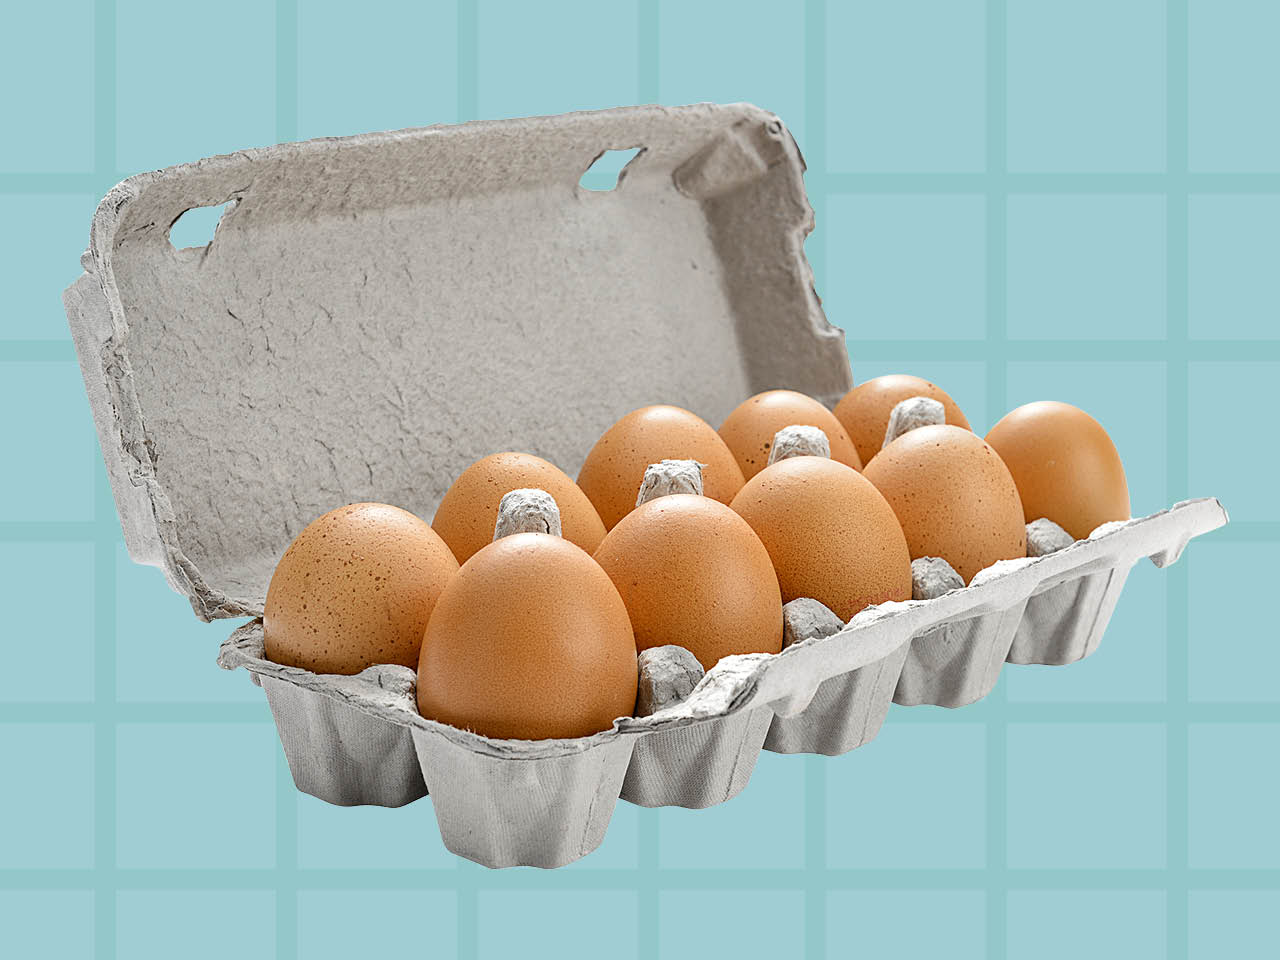 How To Tell If An Egg Is Bad (and How To Store Them So They Last)